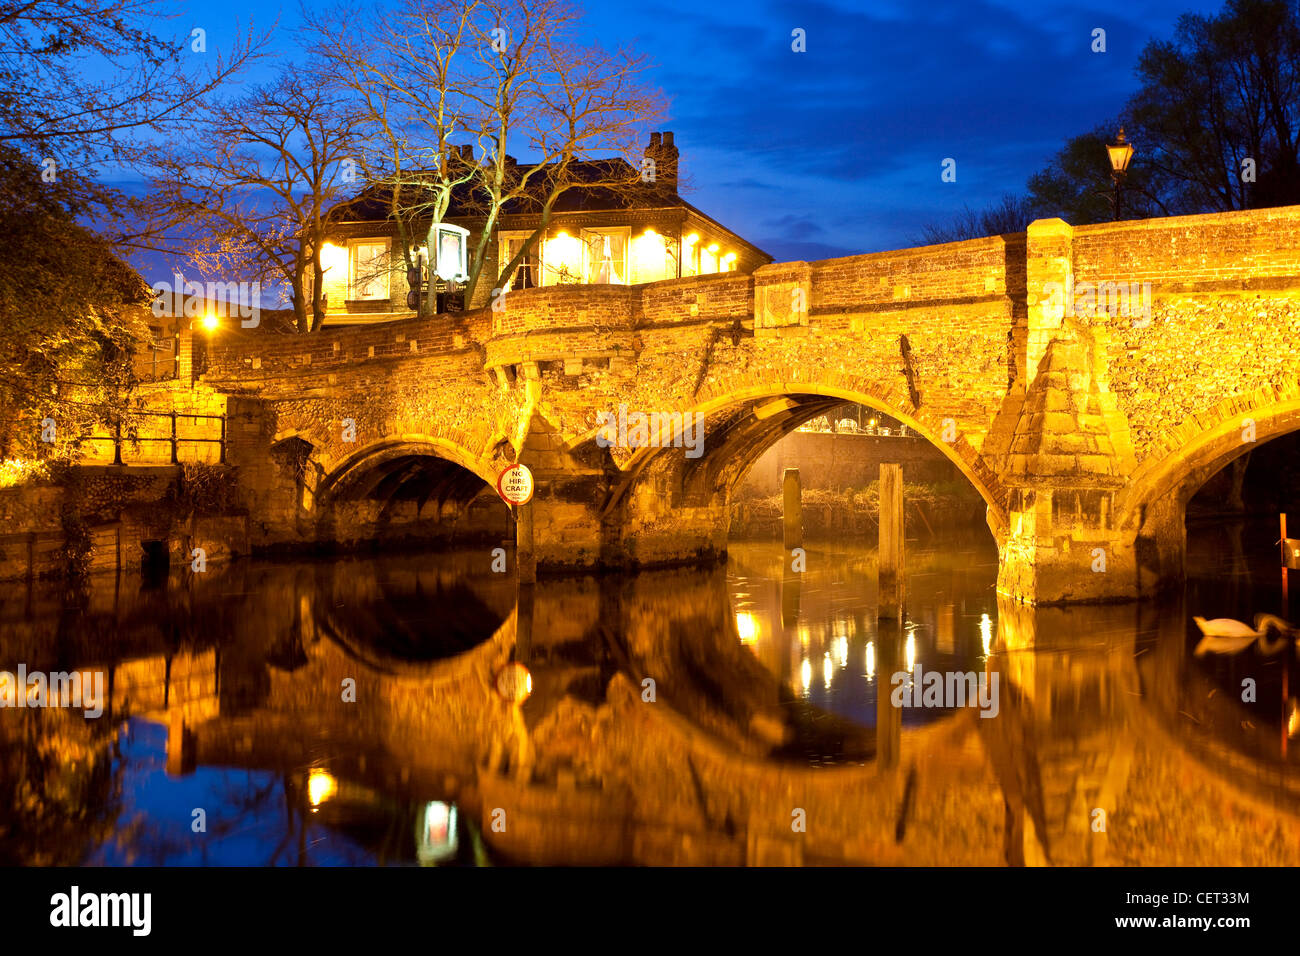 The medieval Bishop Bridge over the River Wensum at night. The bridge was built in 1340 and is one of the oldest - Stock Image